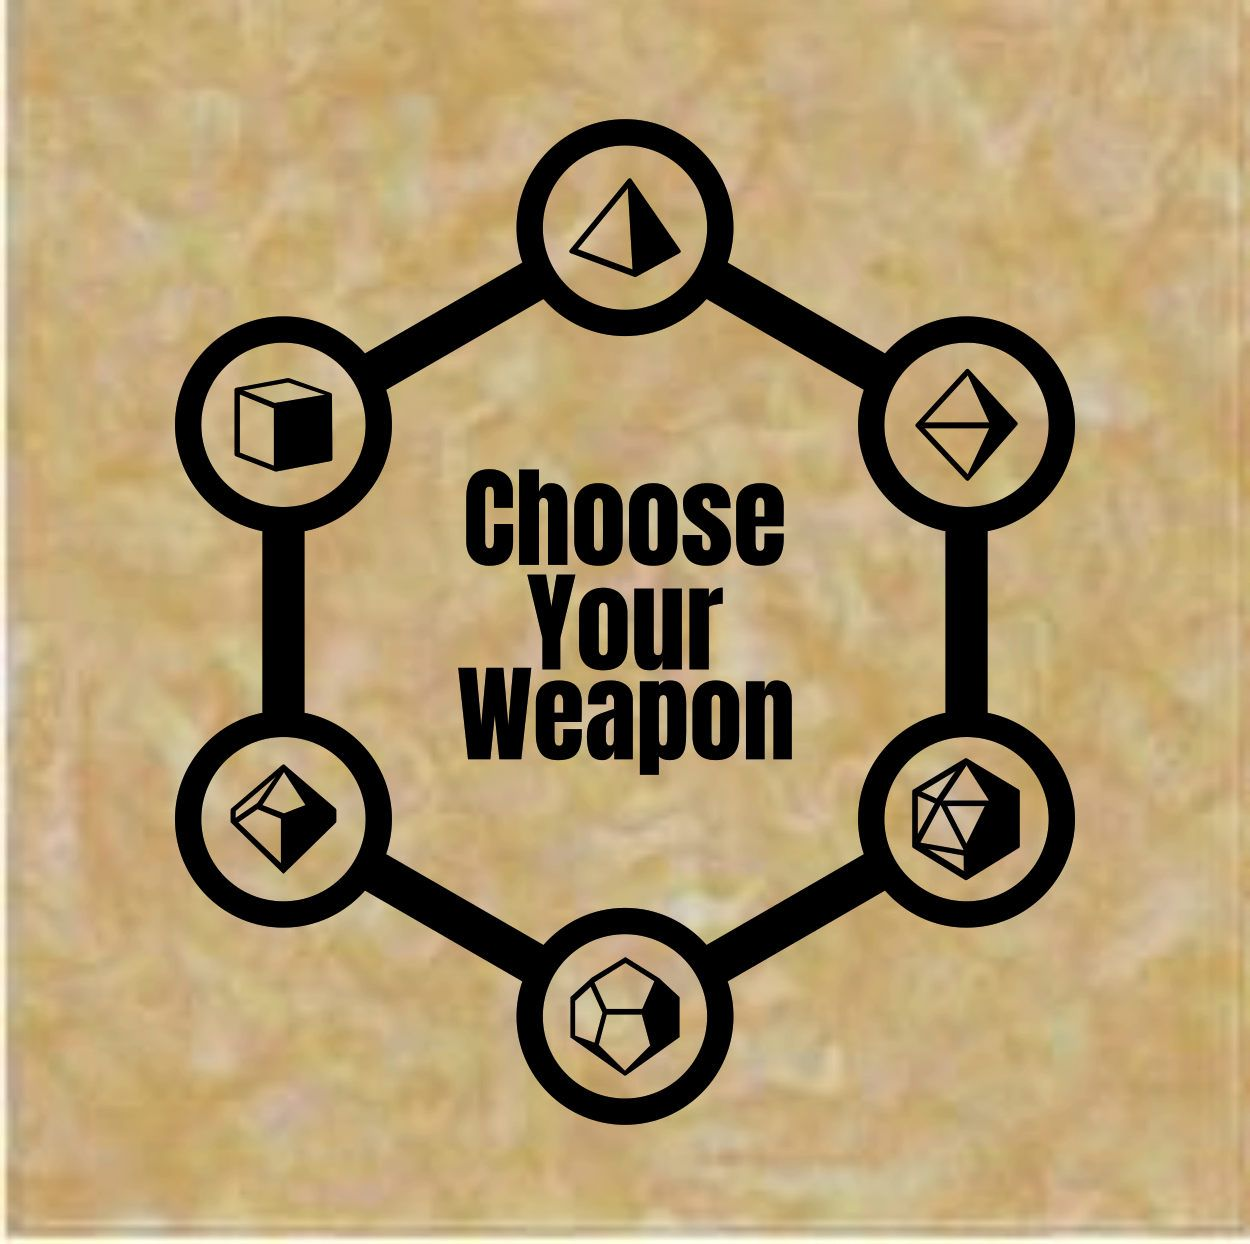 Weapon store sign clipart rpg svg transparent download Choose your weapon dungeons and dragons rpg gamer vinyl ... svg transparent download